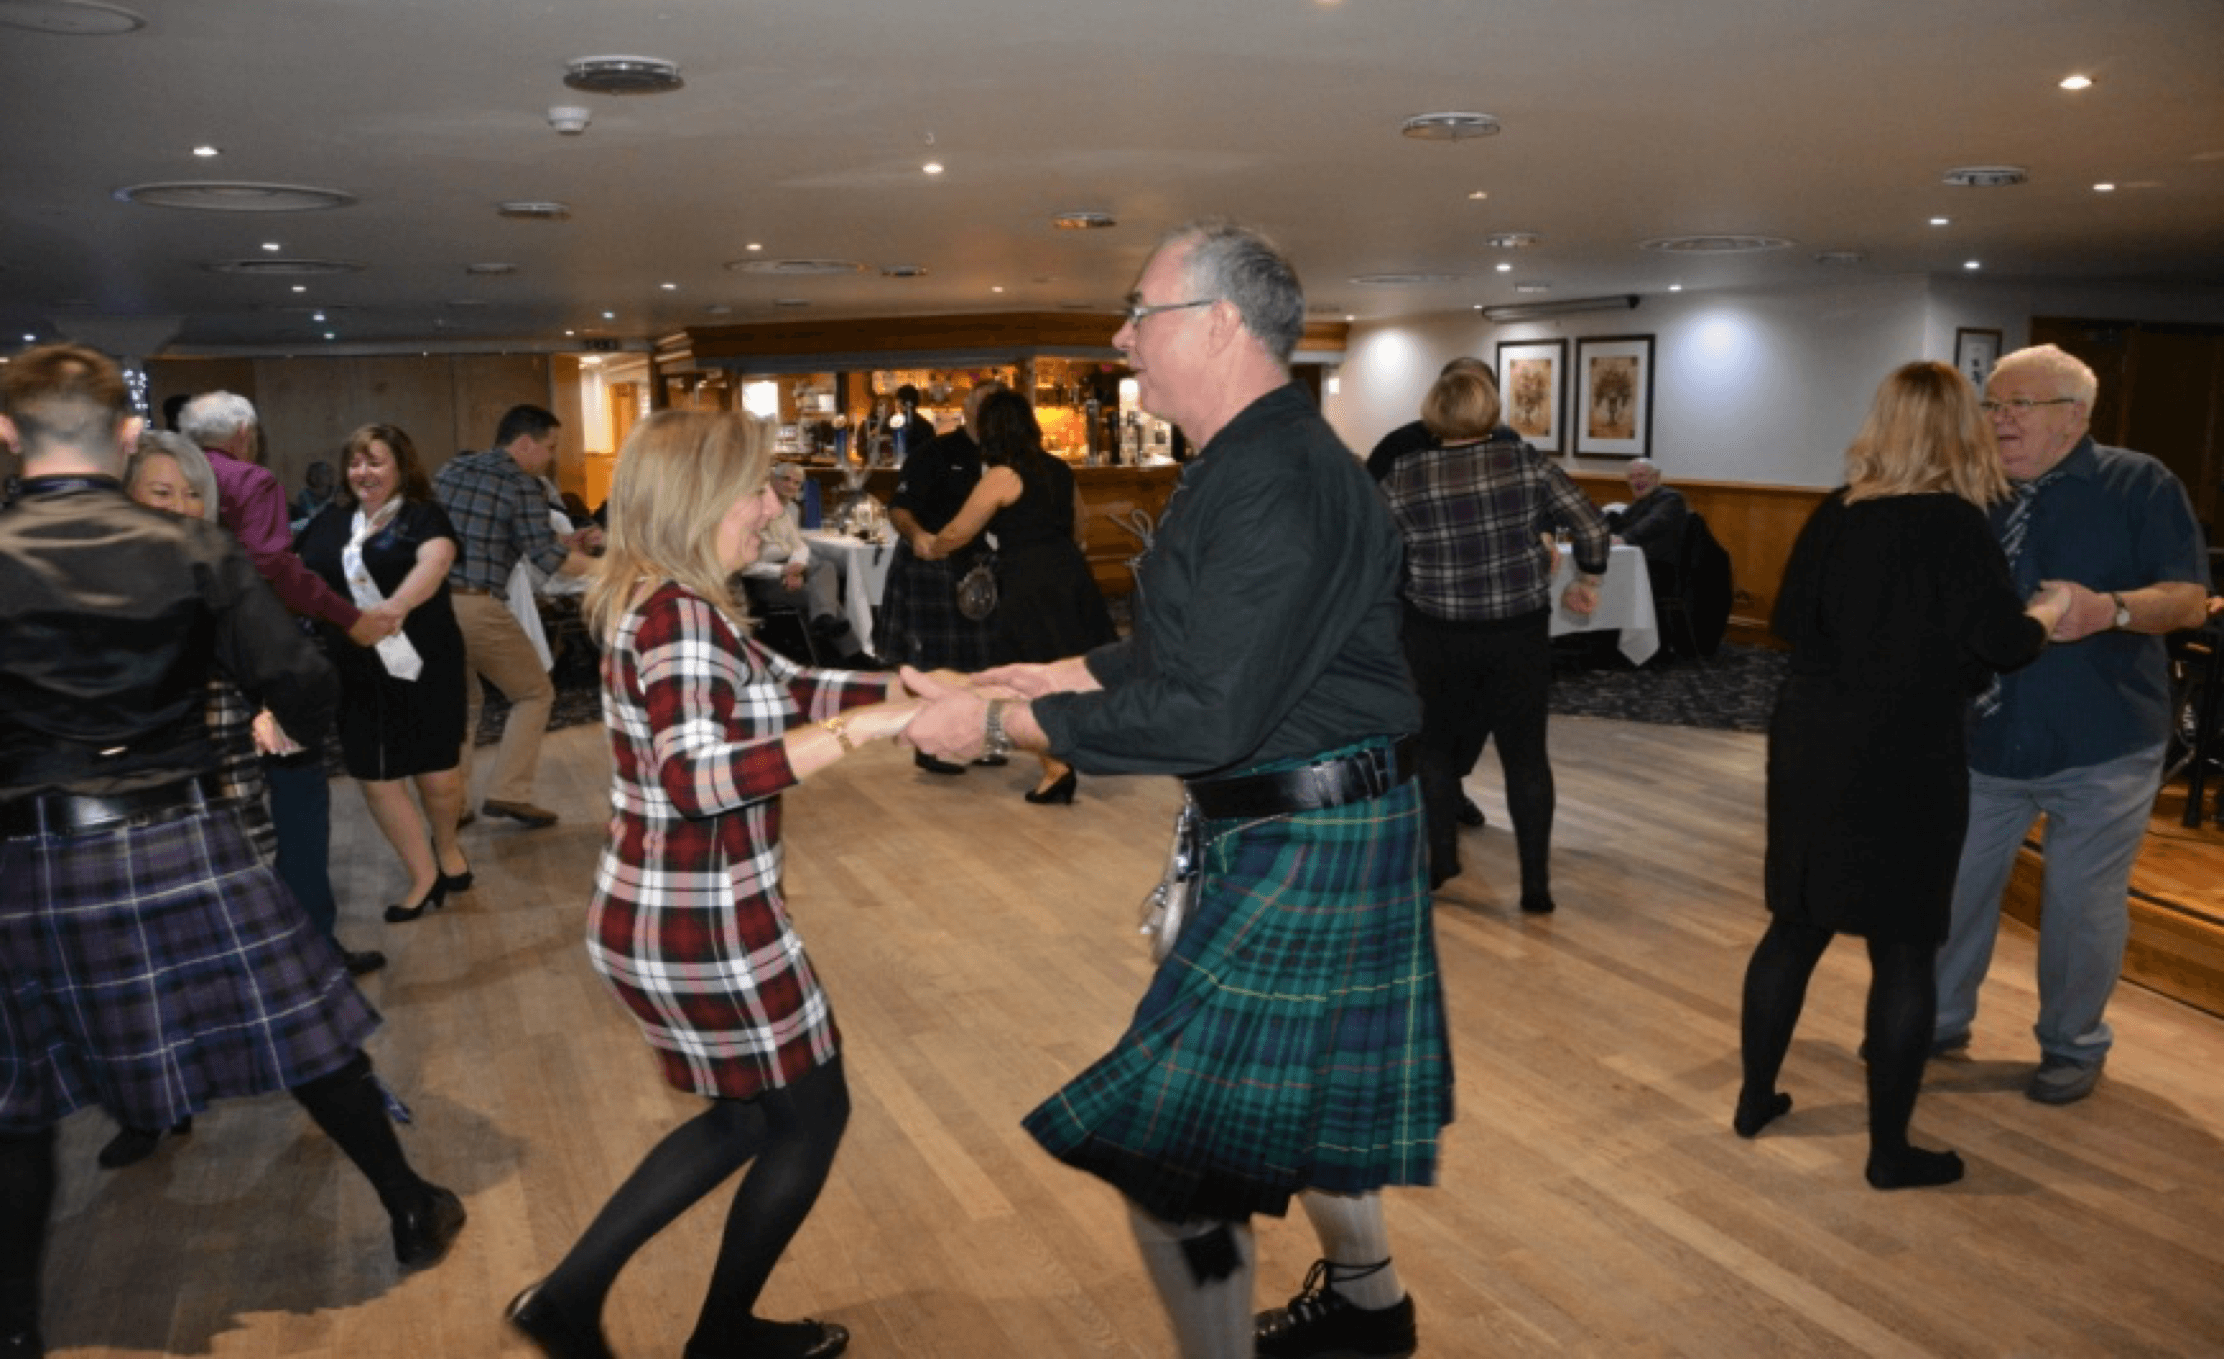 Burns Night is annually celebrated in Scotland on or around January 25. It commemorates the life of the bard (poet) Robert Burns, who was born on January 25, 1759. The day also celebrates Burns' contribution to Scottish culture. His best known work is Auld Lang Syne.